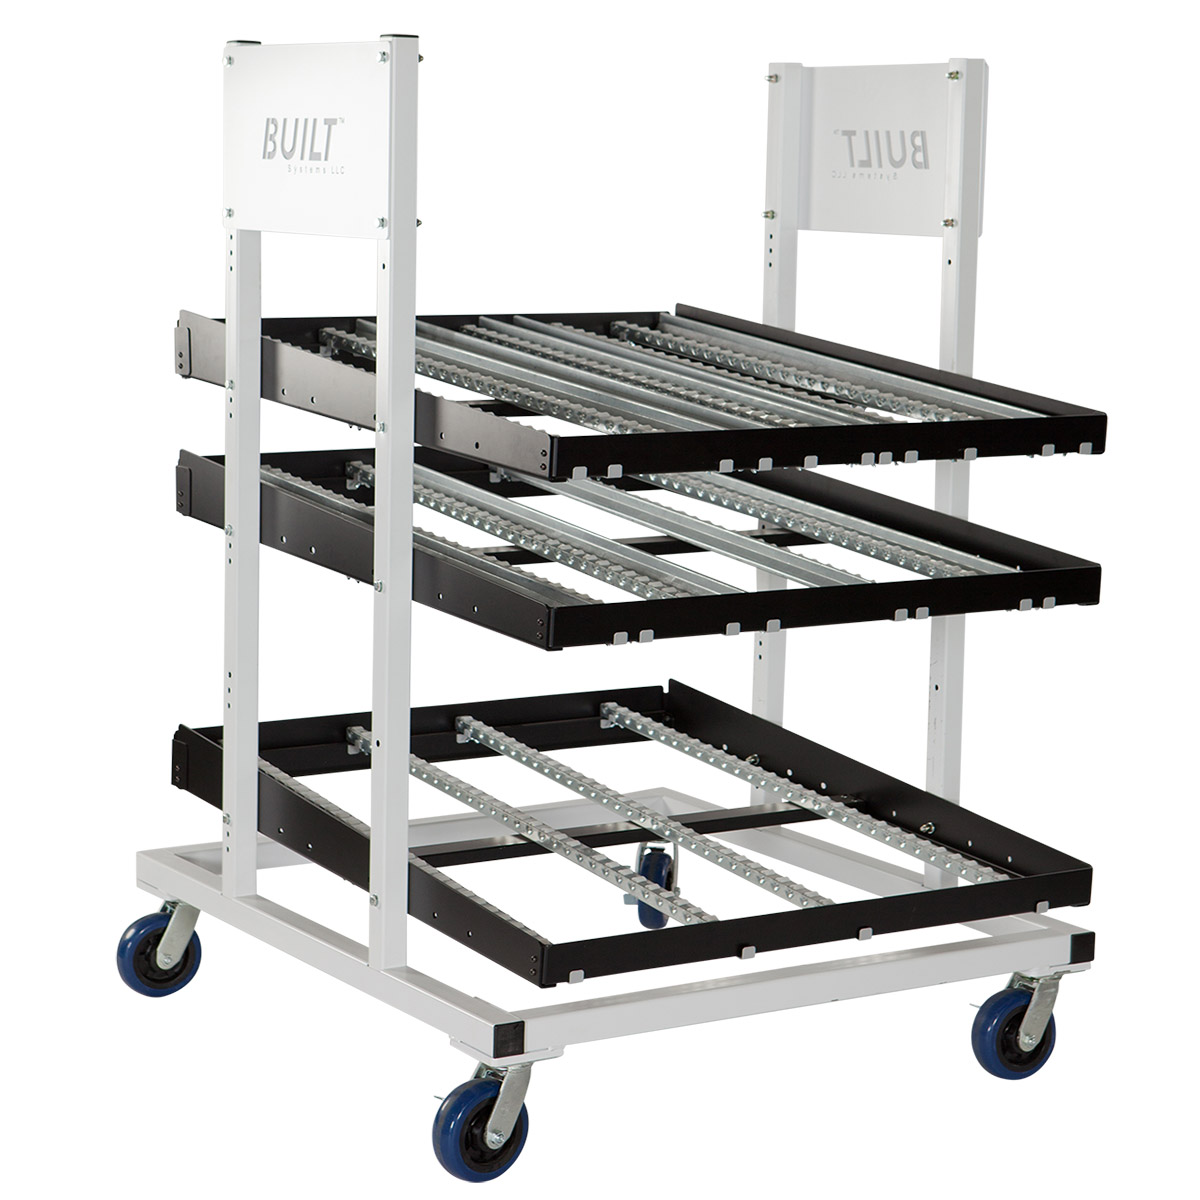 Mobile flow rack built flexible